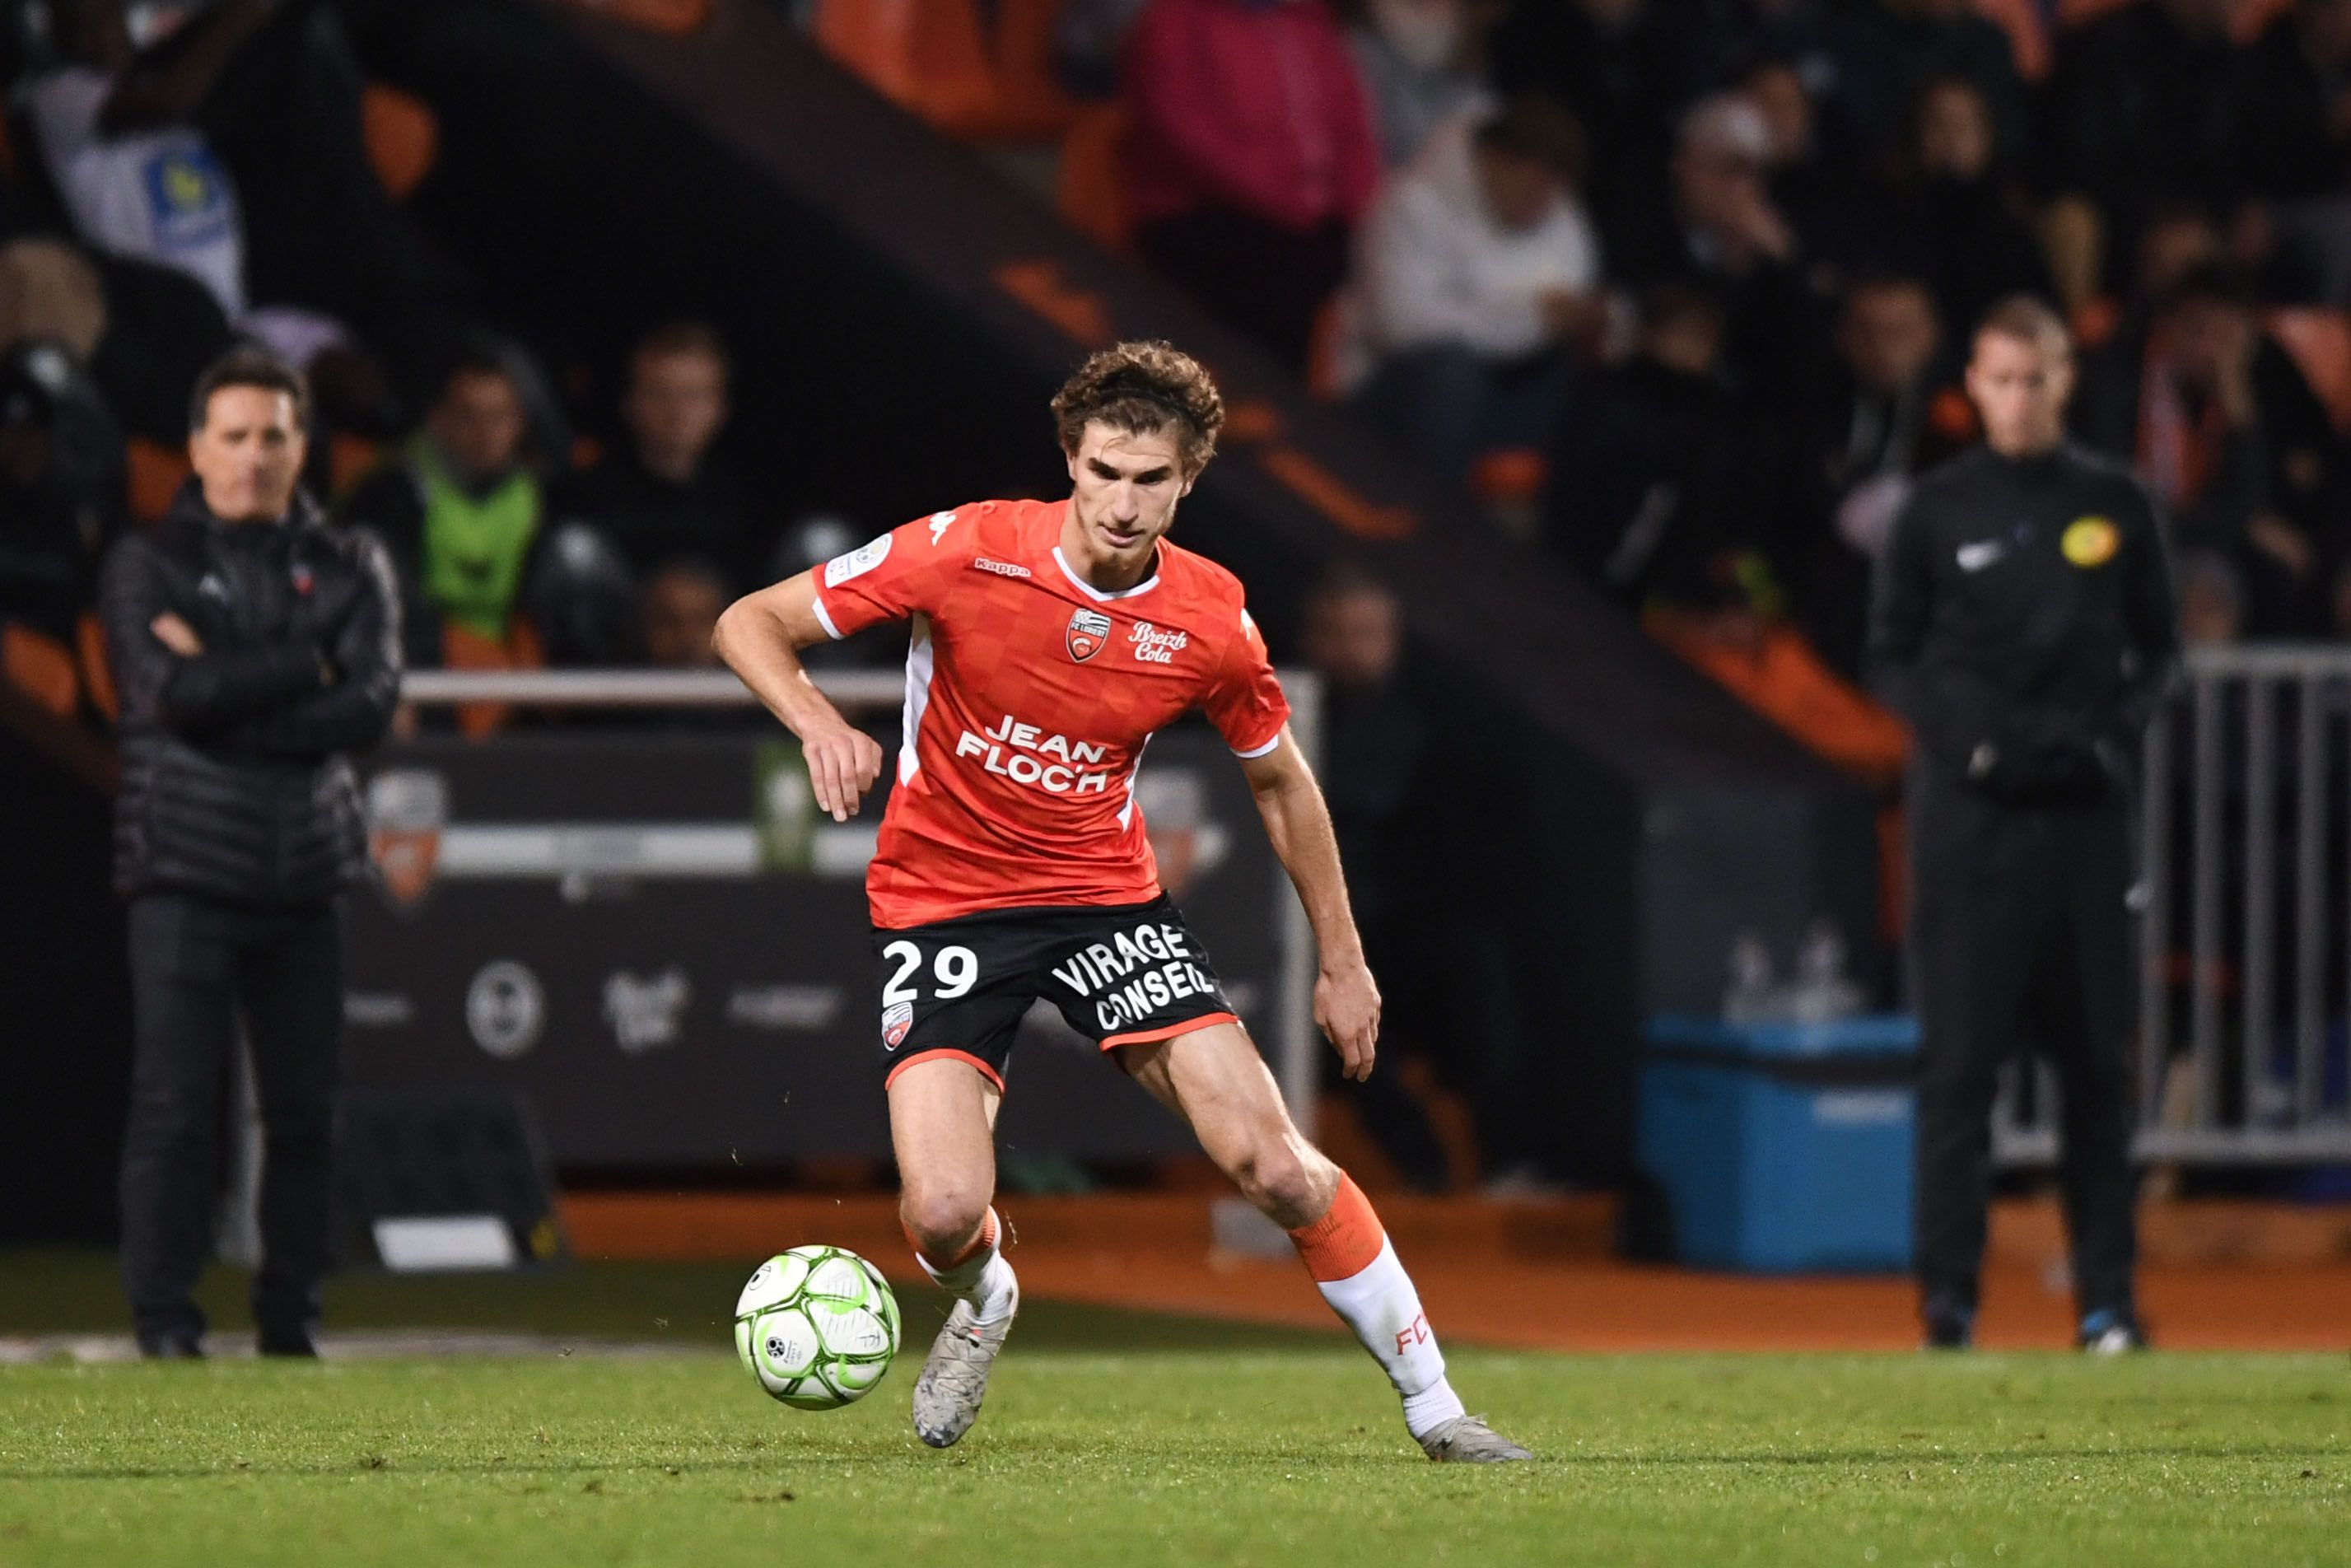 Football - Ligue 2 - Ligue 2 : les scores de la 18e journée en direct